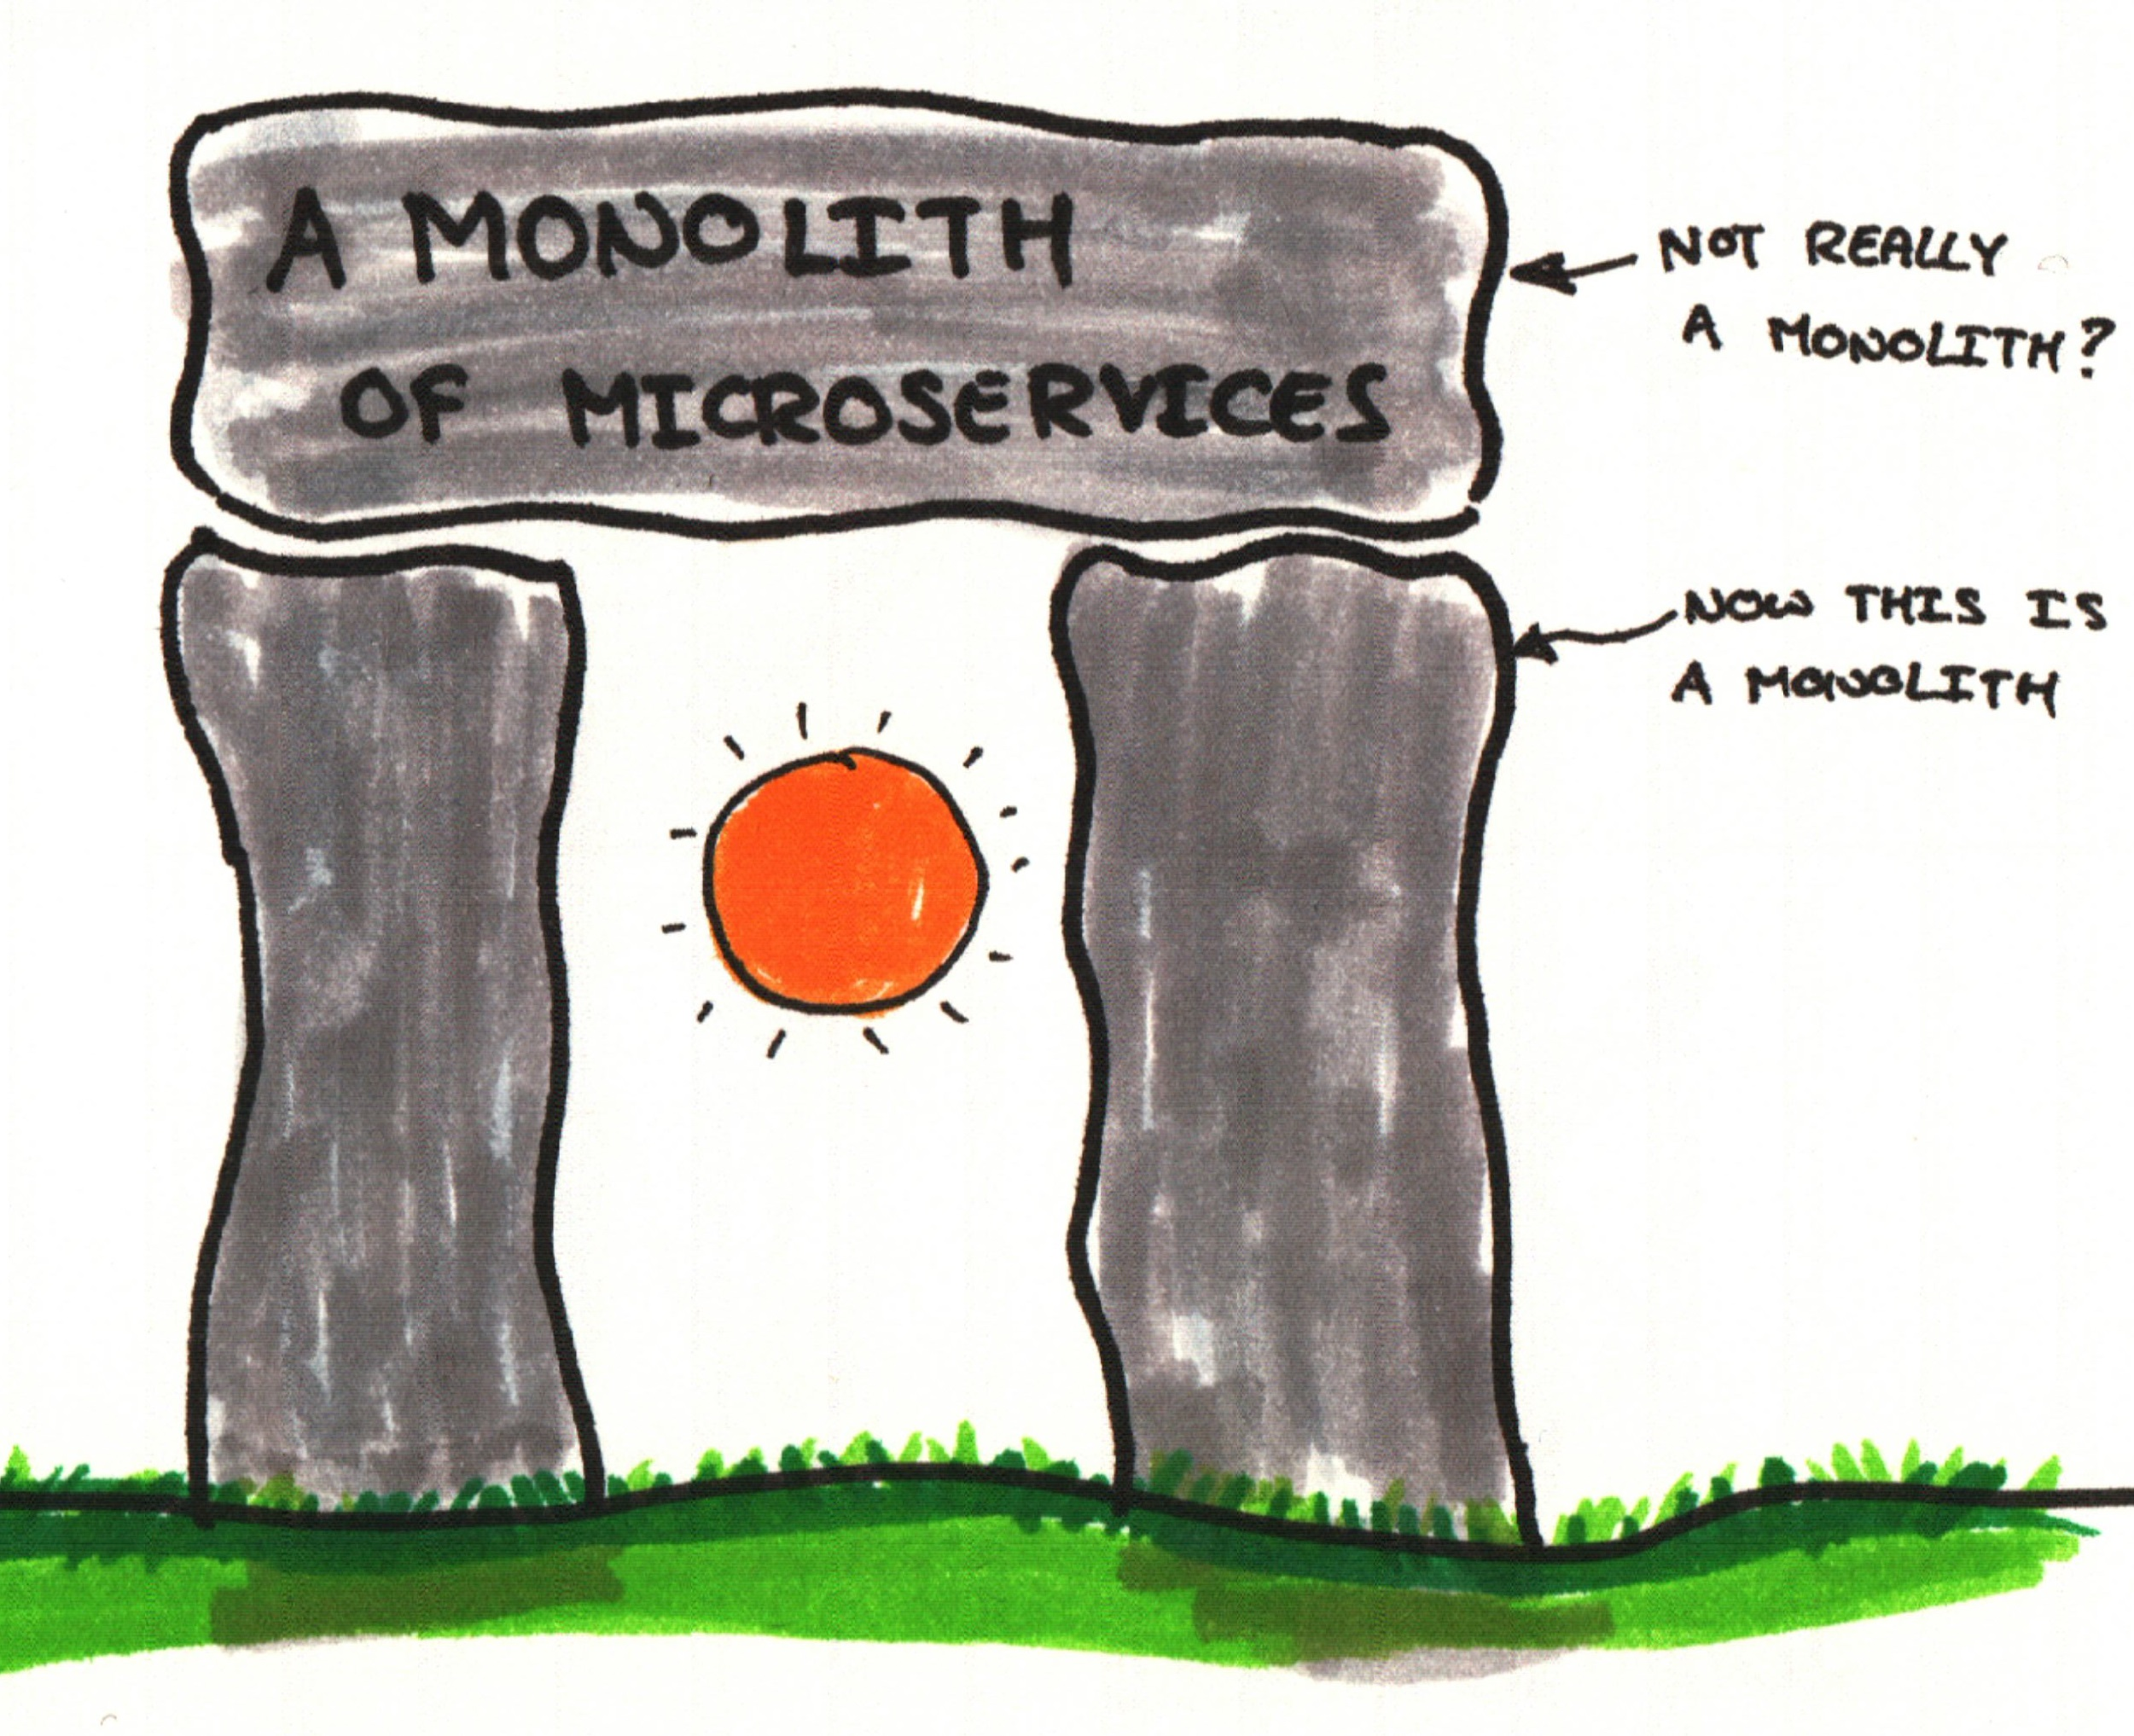 First slide from the talk, Stonehenge representing a monolith